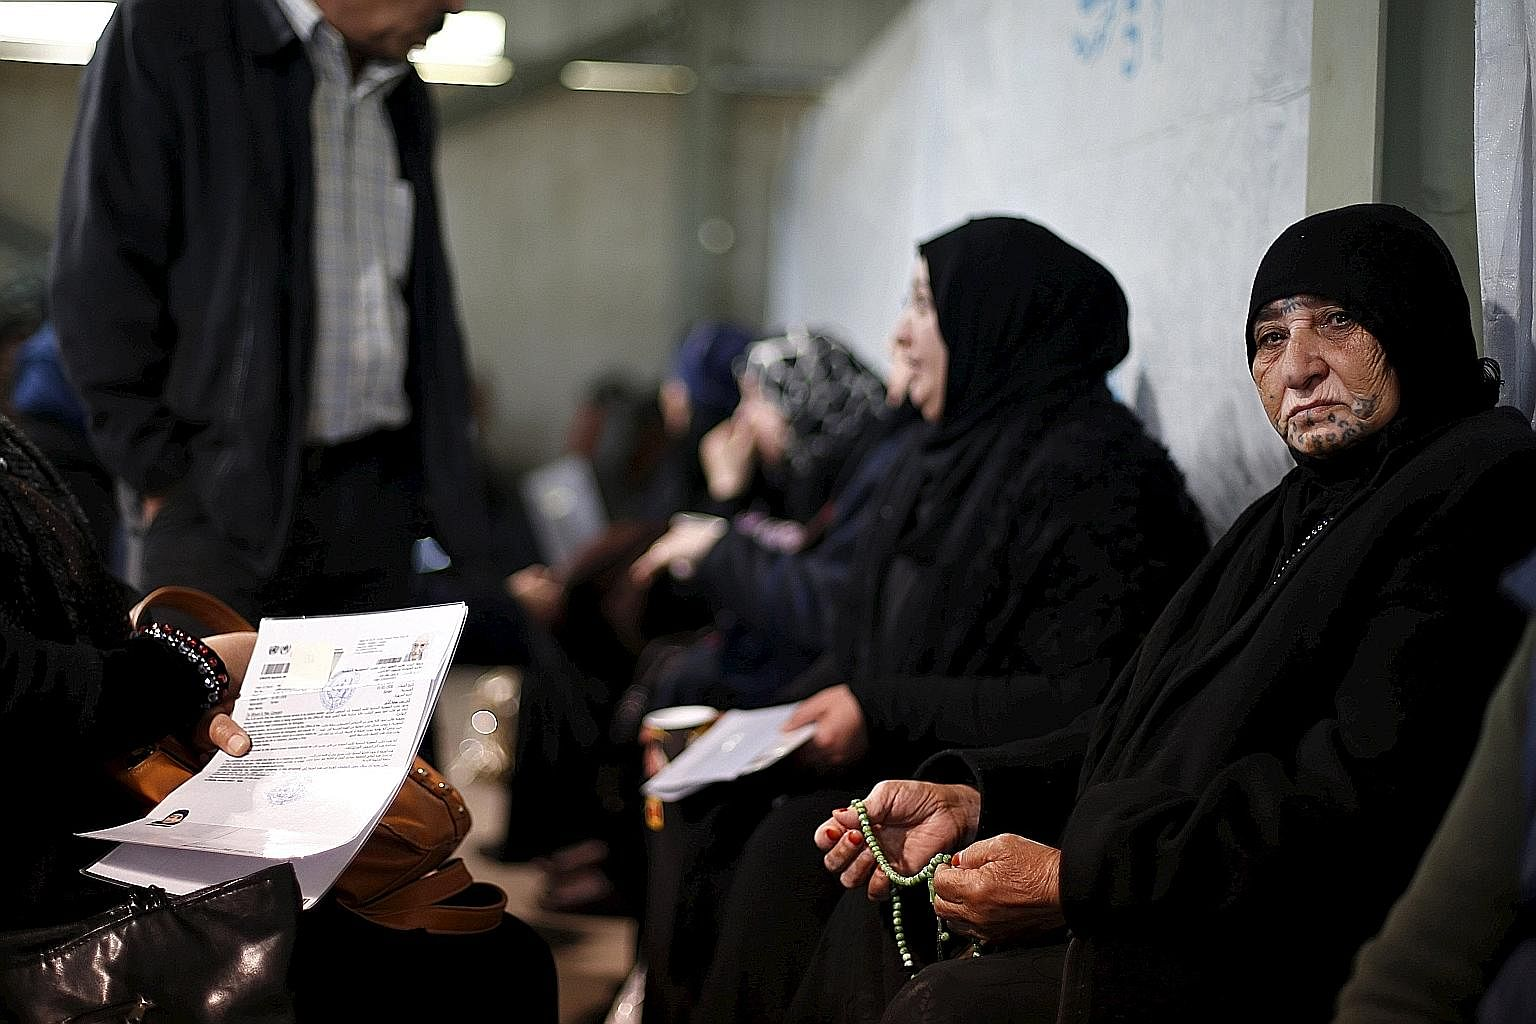 Syrian refugees waiting to register at the office of the UN High Commissioner for Refugees in Amman, Jordan, last week.